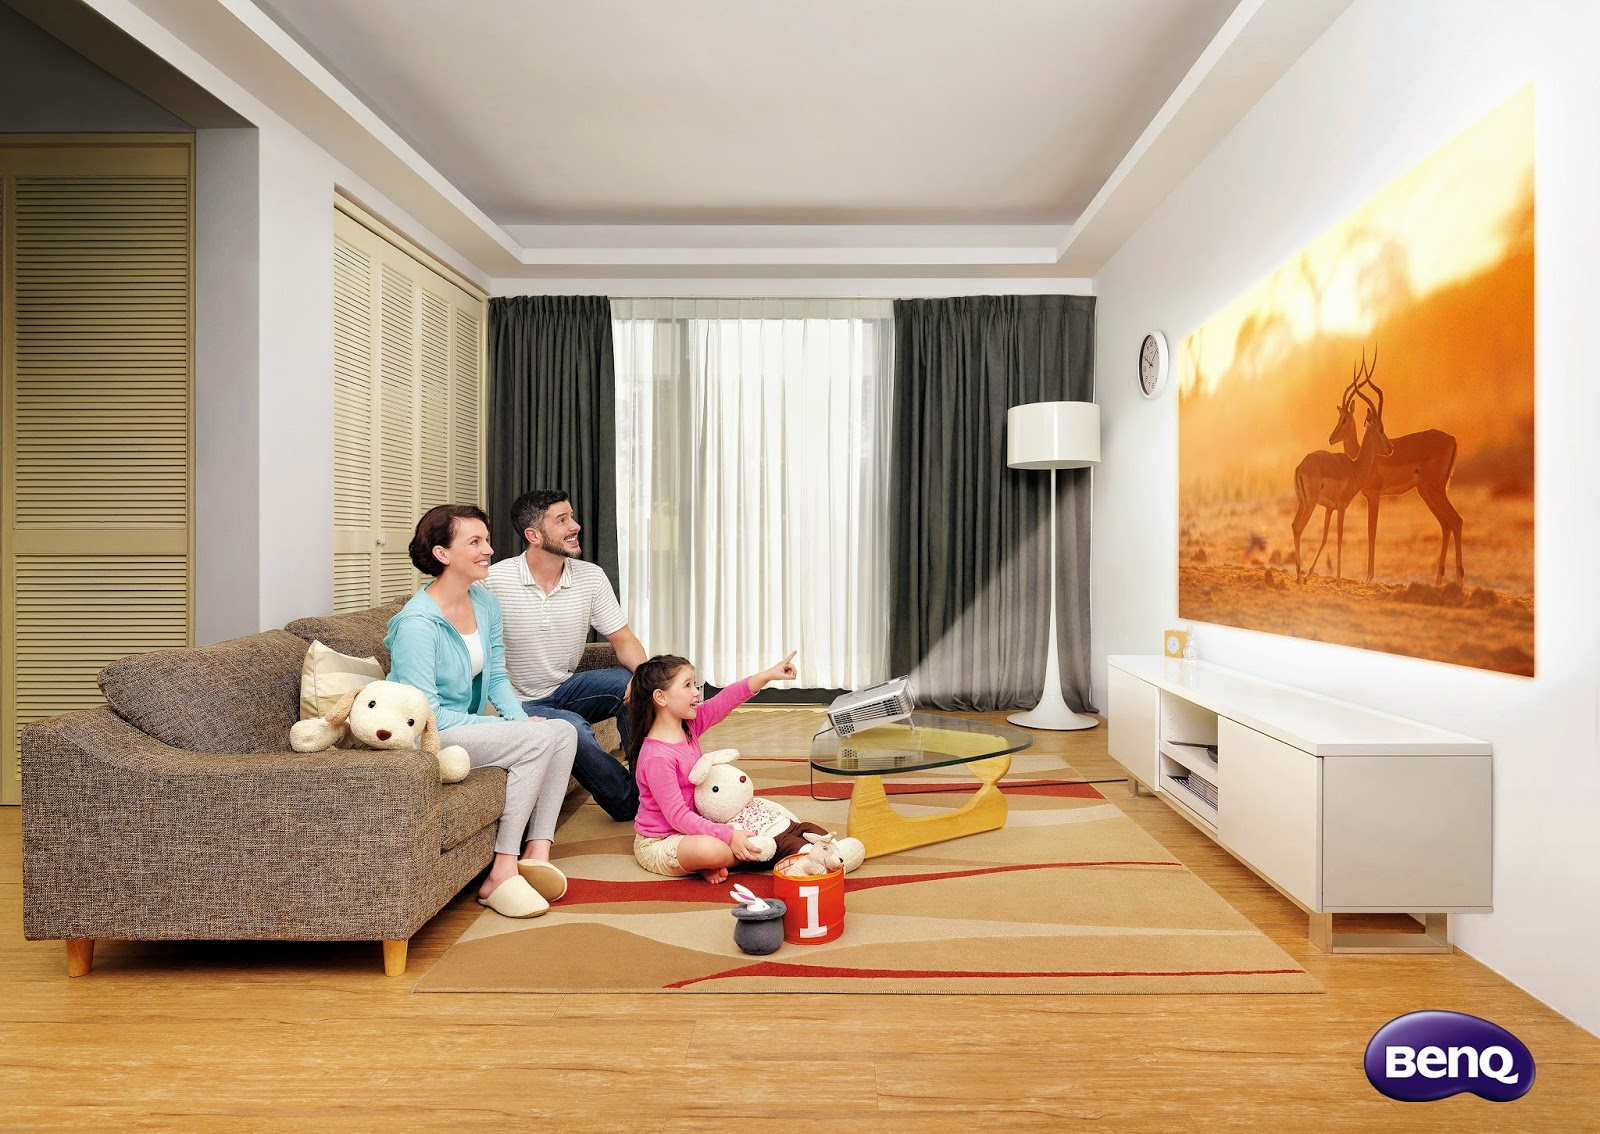 #BenQHomeCinema, home video projector, BenQ, home entertainment